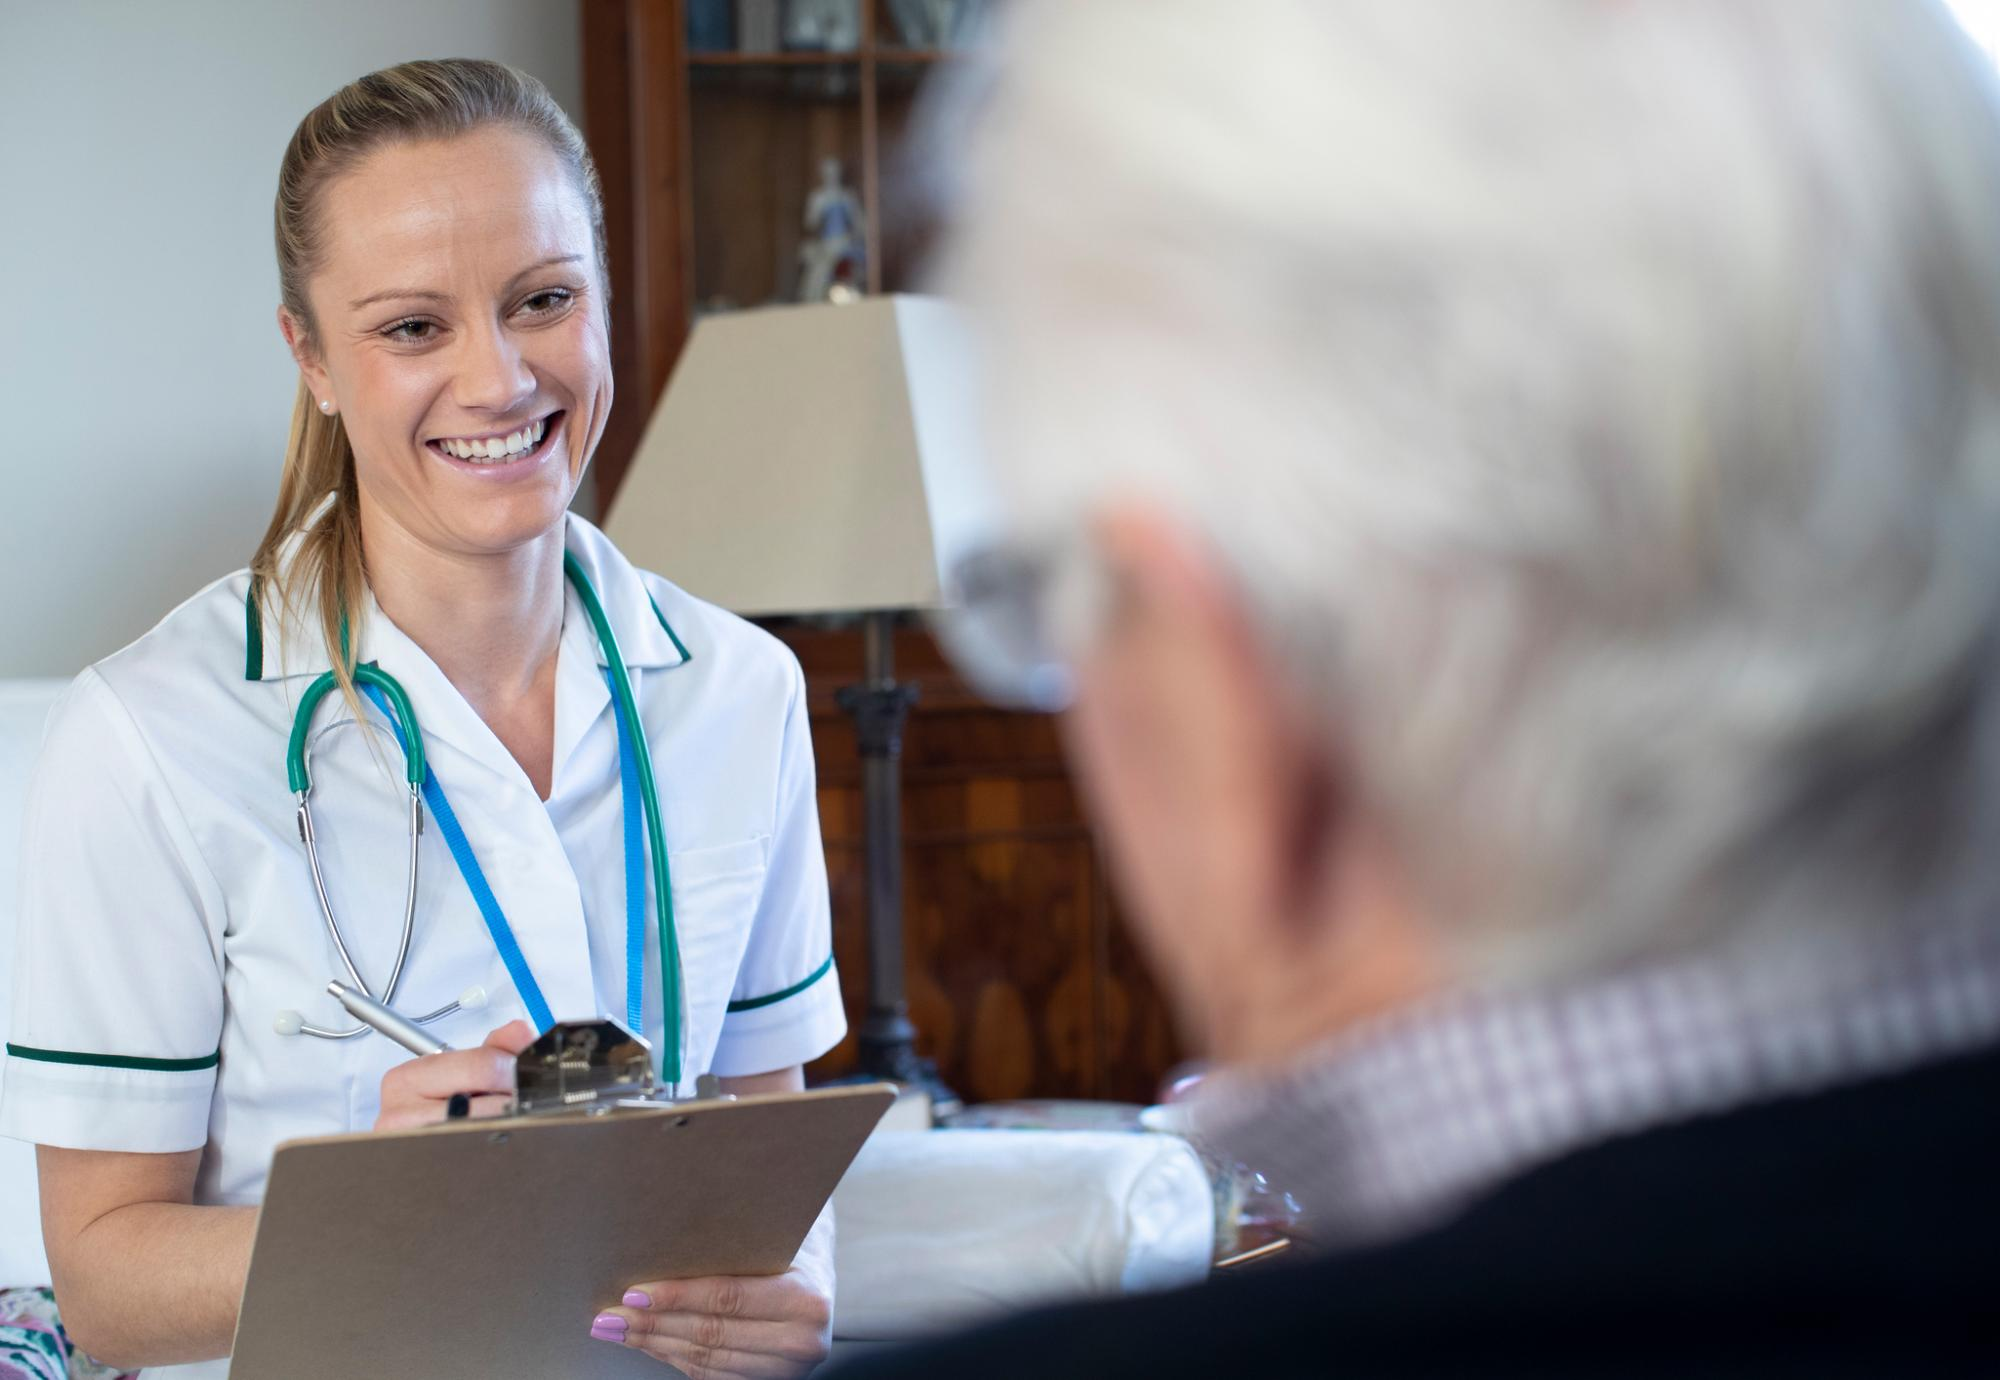 Female nurse recording information while interviewing a patient